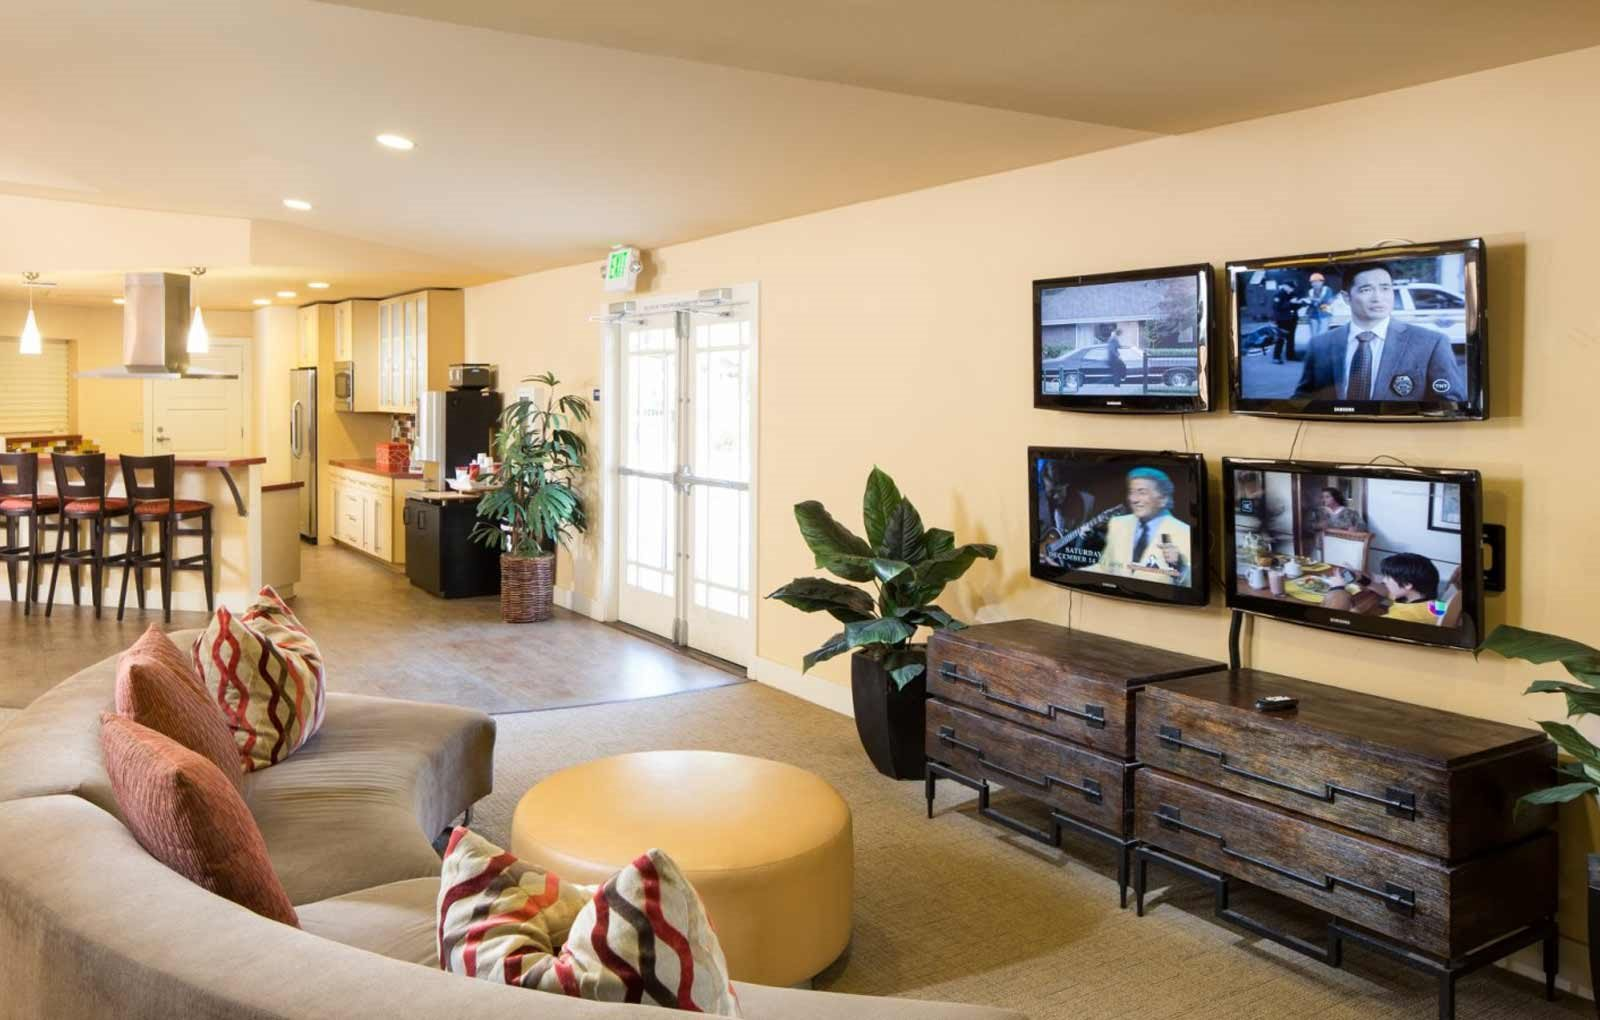 Awe Inspiring Apartments In Downtown Sacramento The Palms Home Download Free Architecture Designs Embacsunscenecom